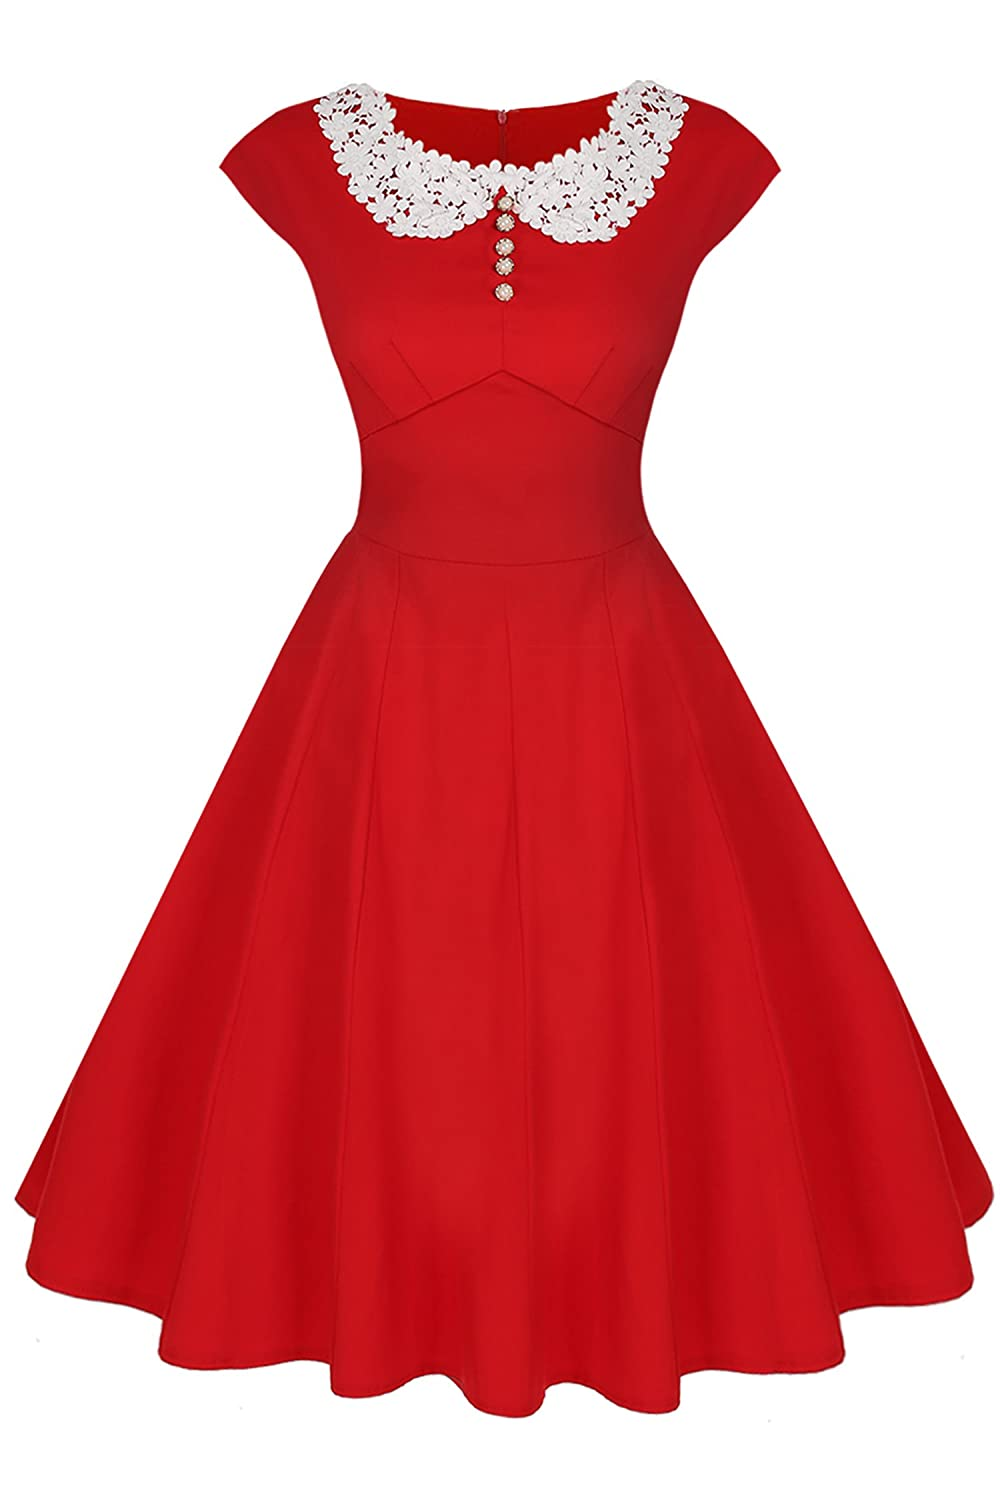 1950s Dresses, 50s Dresses | 1950s Style Dresses ACEVOG Womens Classy Vintage Audrey Hepburn Style 1940s Rockabilly Evening Dress $19.99 AT vintagedancer.com